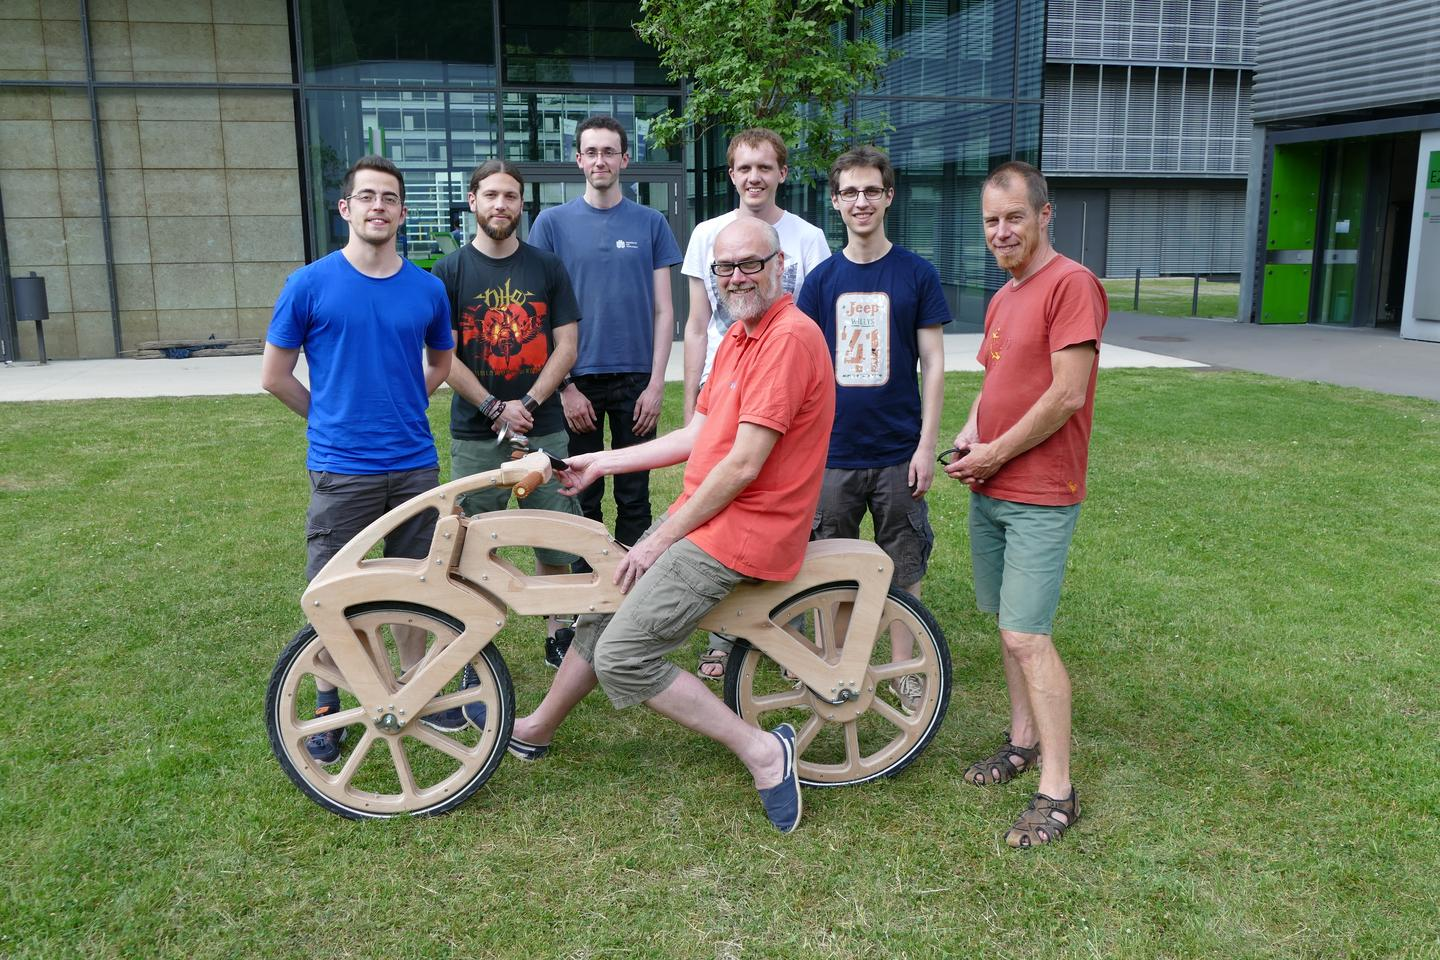 Prof. Holger Hermanns and the Draisine 200.0 team